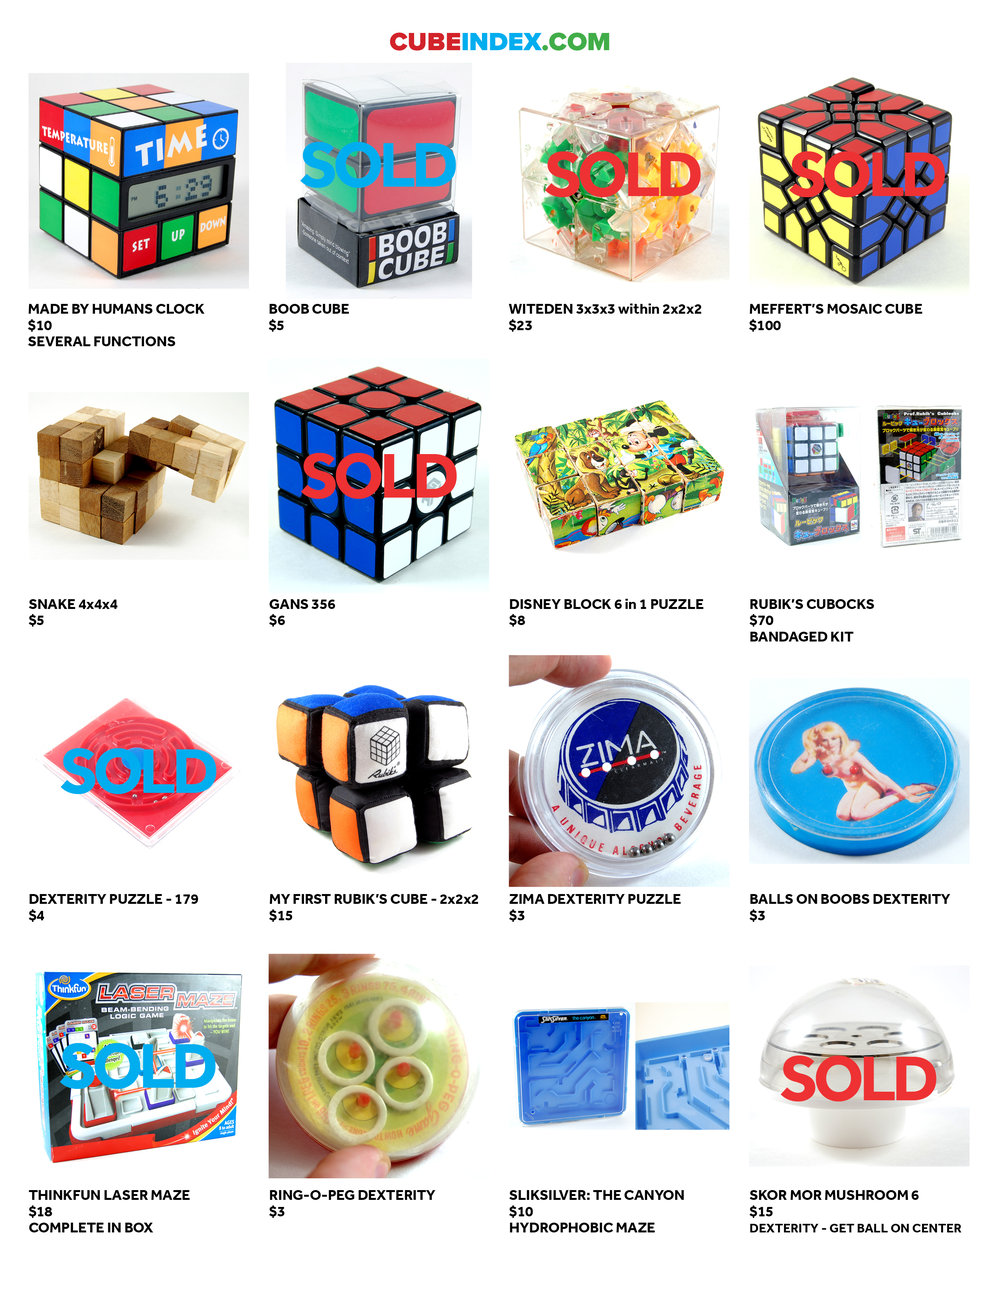 cube-index-for-sale-catalog-april-2017-v53.jpg